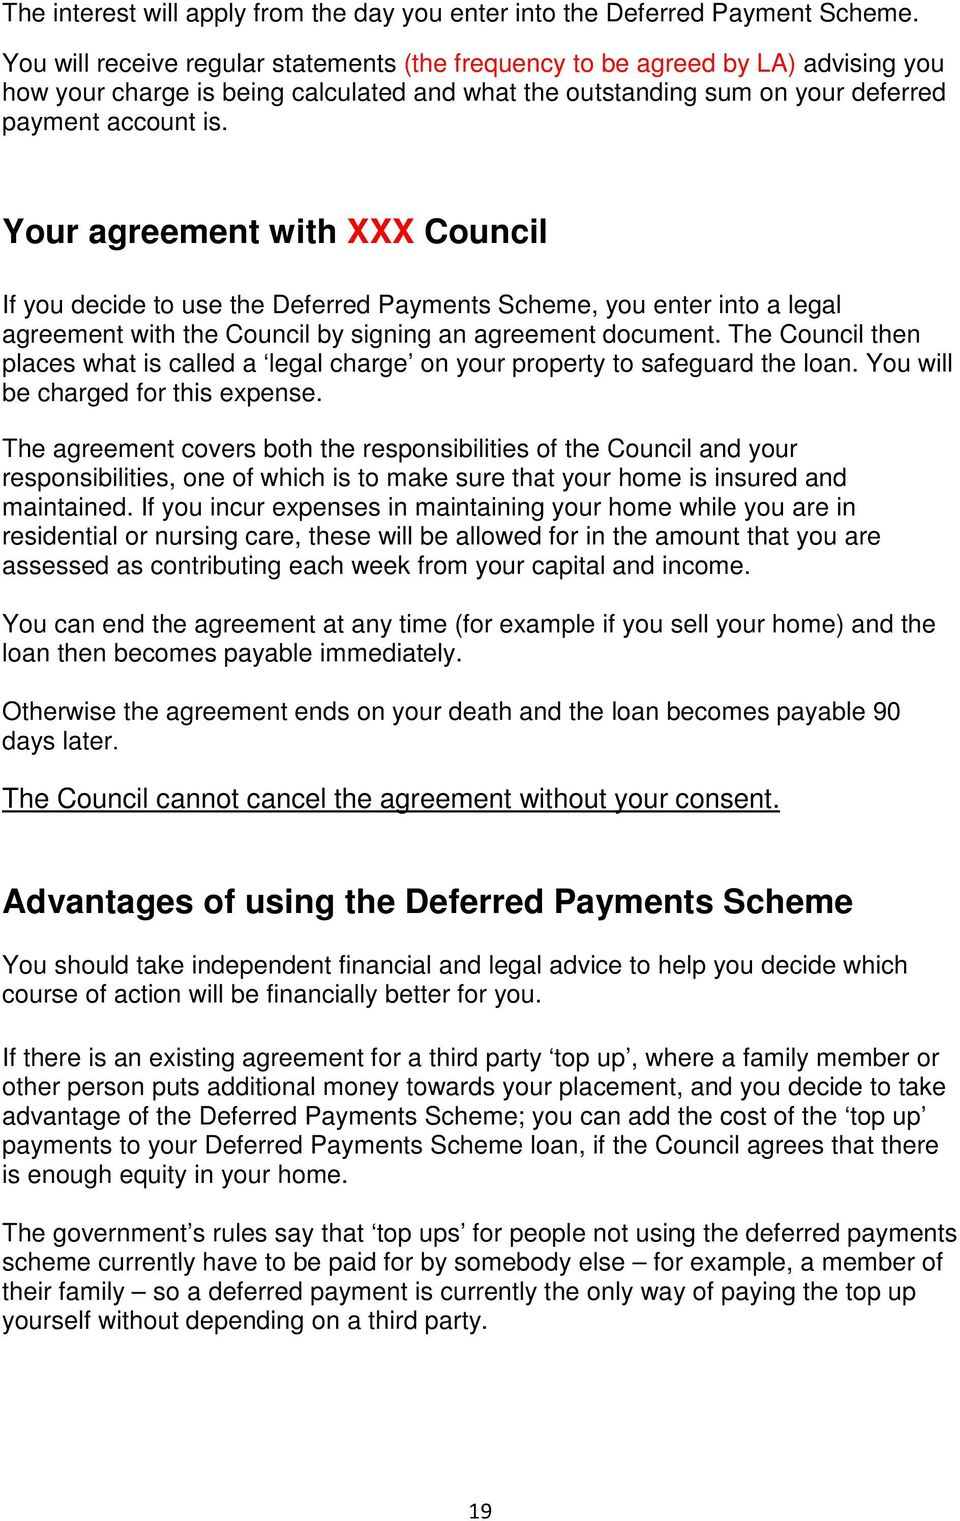 Your agreement with XXX Council If you decide to use the Deferred Payments Scheme, you enter into a legal agreement with the Council by signing an agreement document.